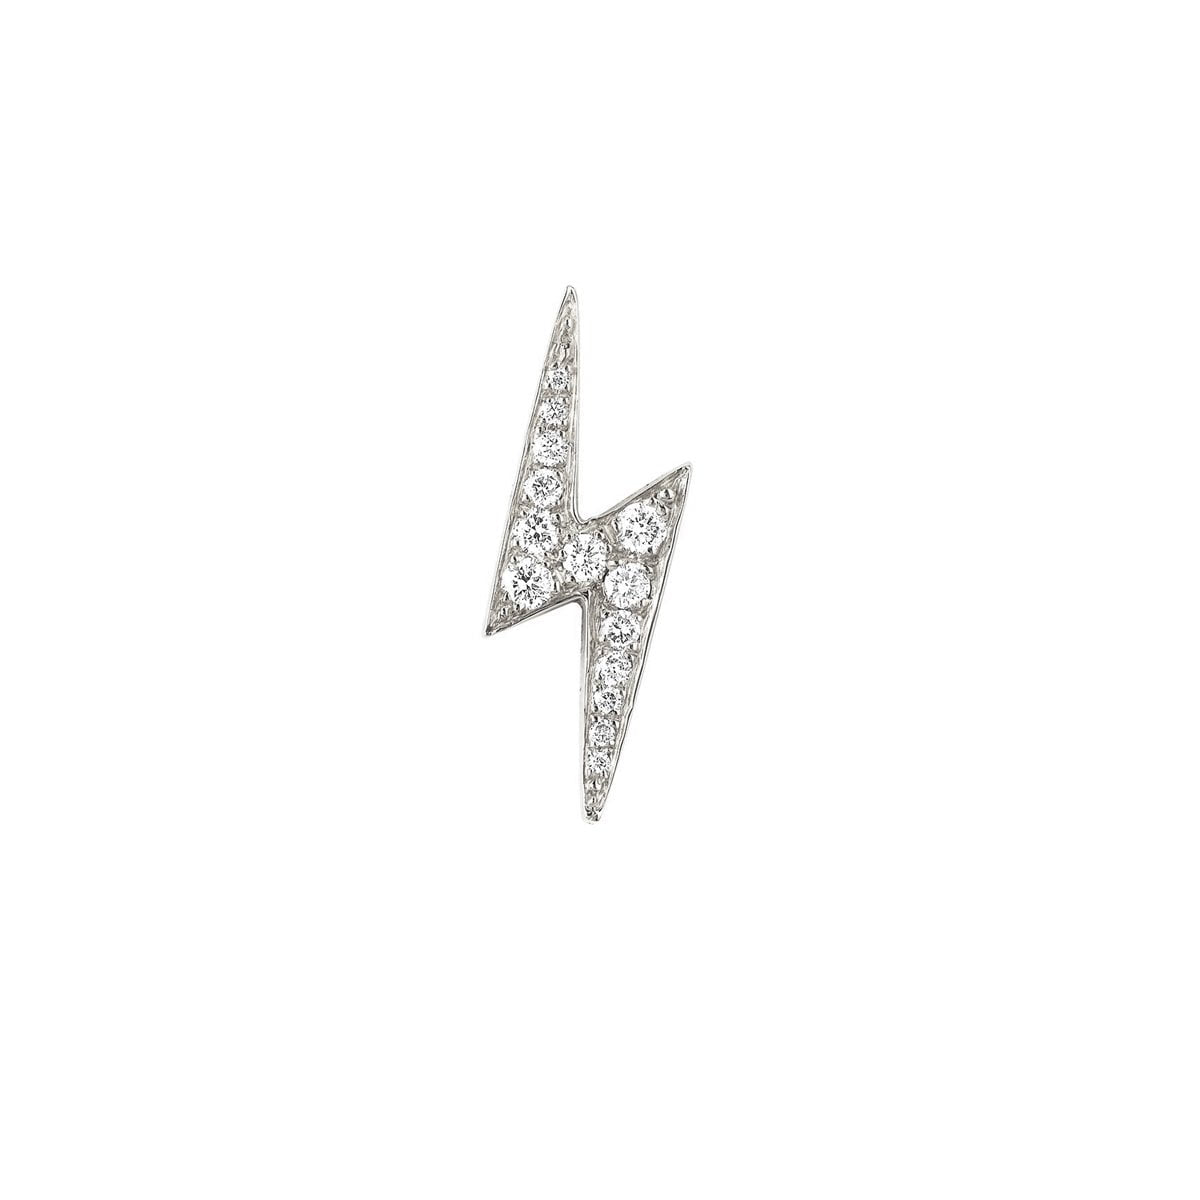 Pavé Diamond Bolt Studs